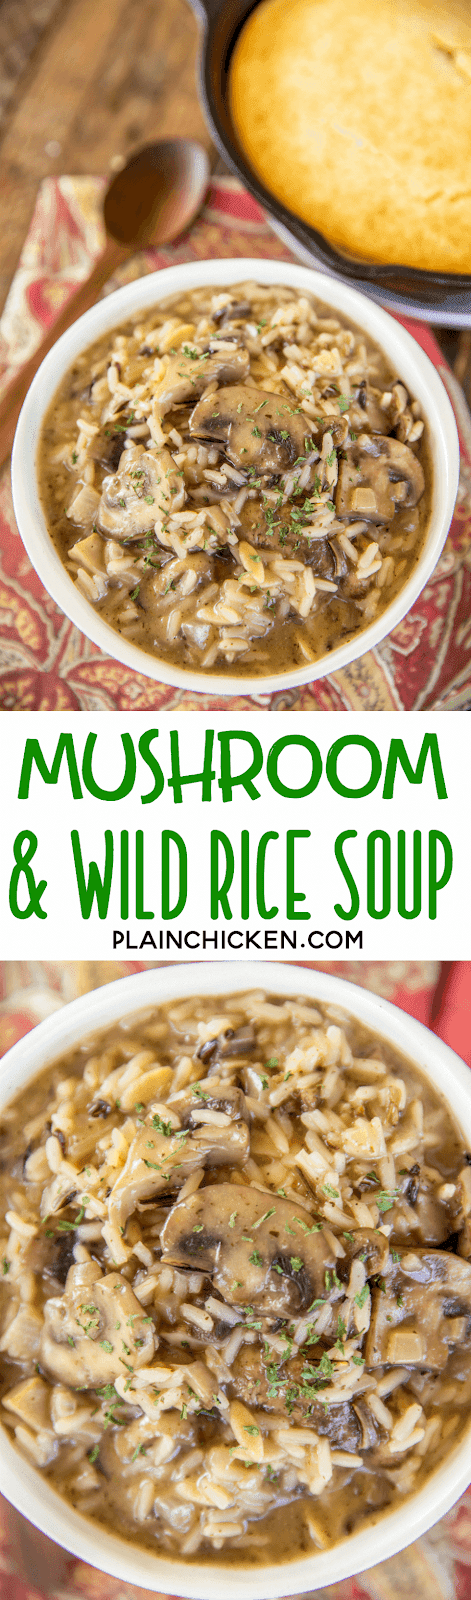 collage of 2 photos of mushroom and wild rice soup